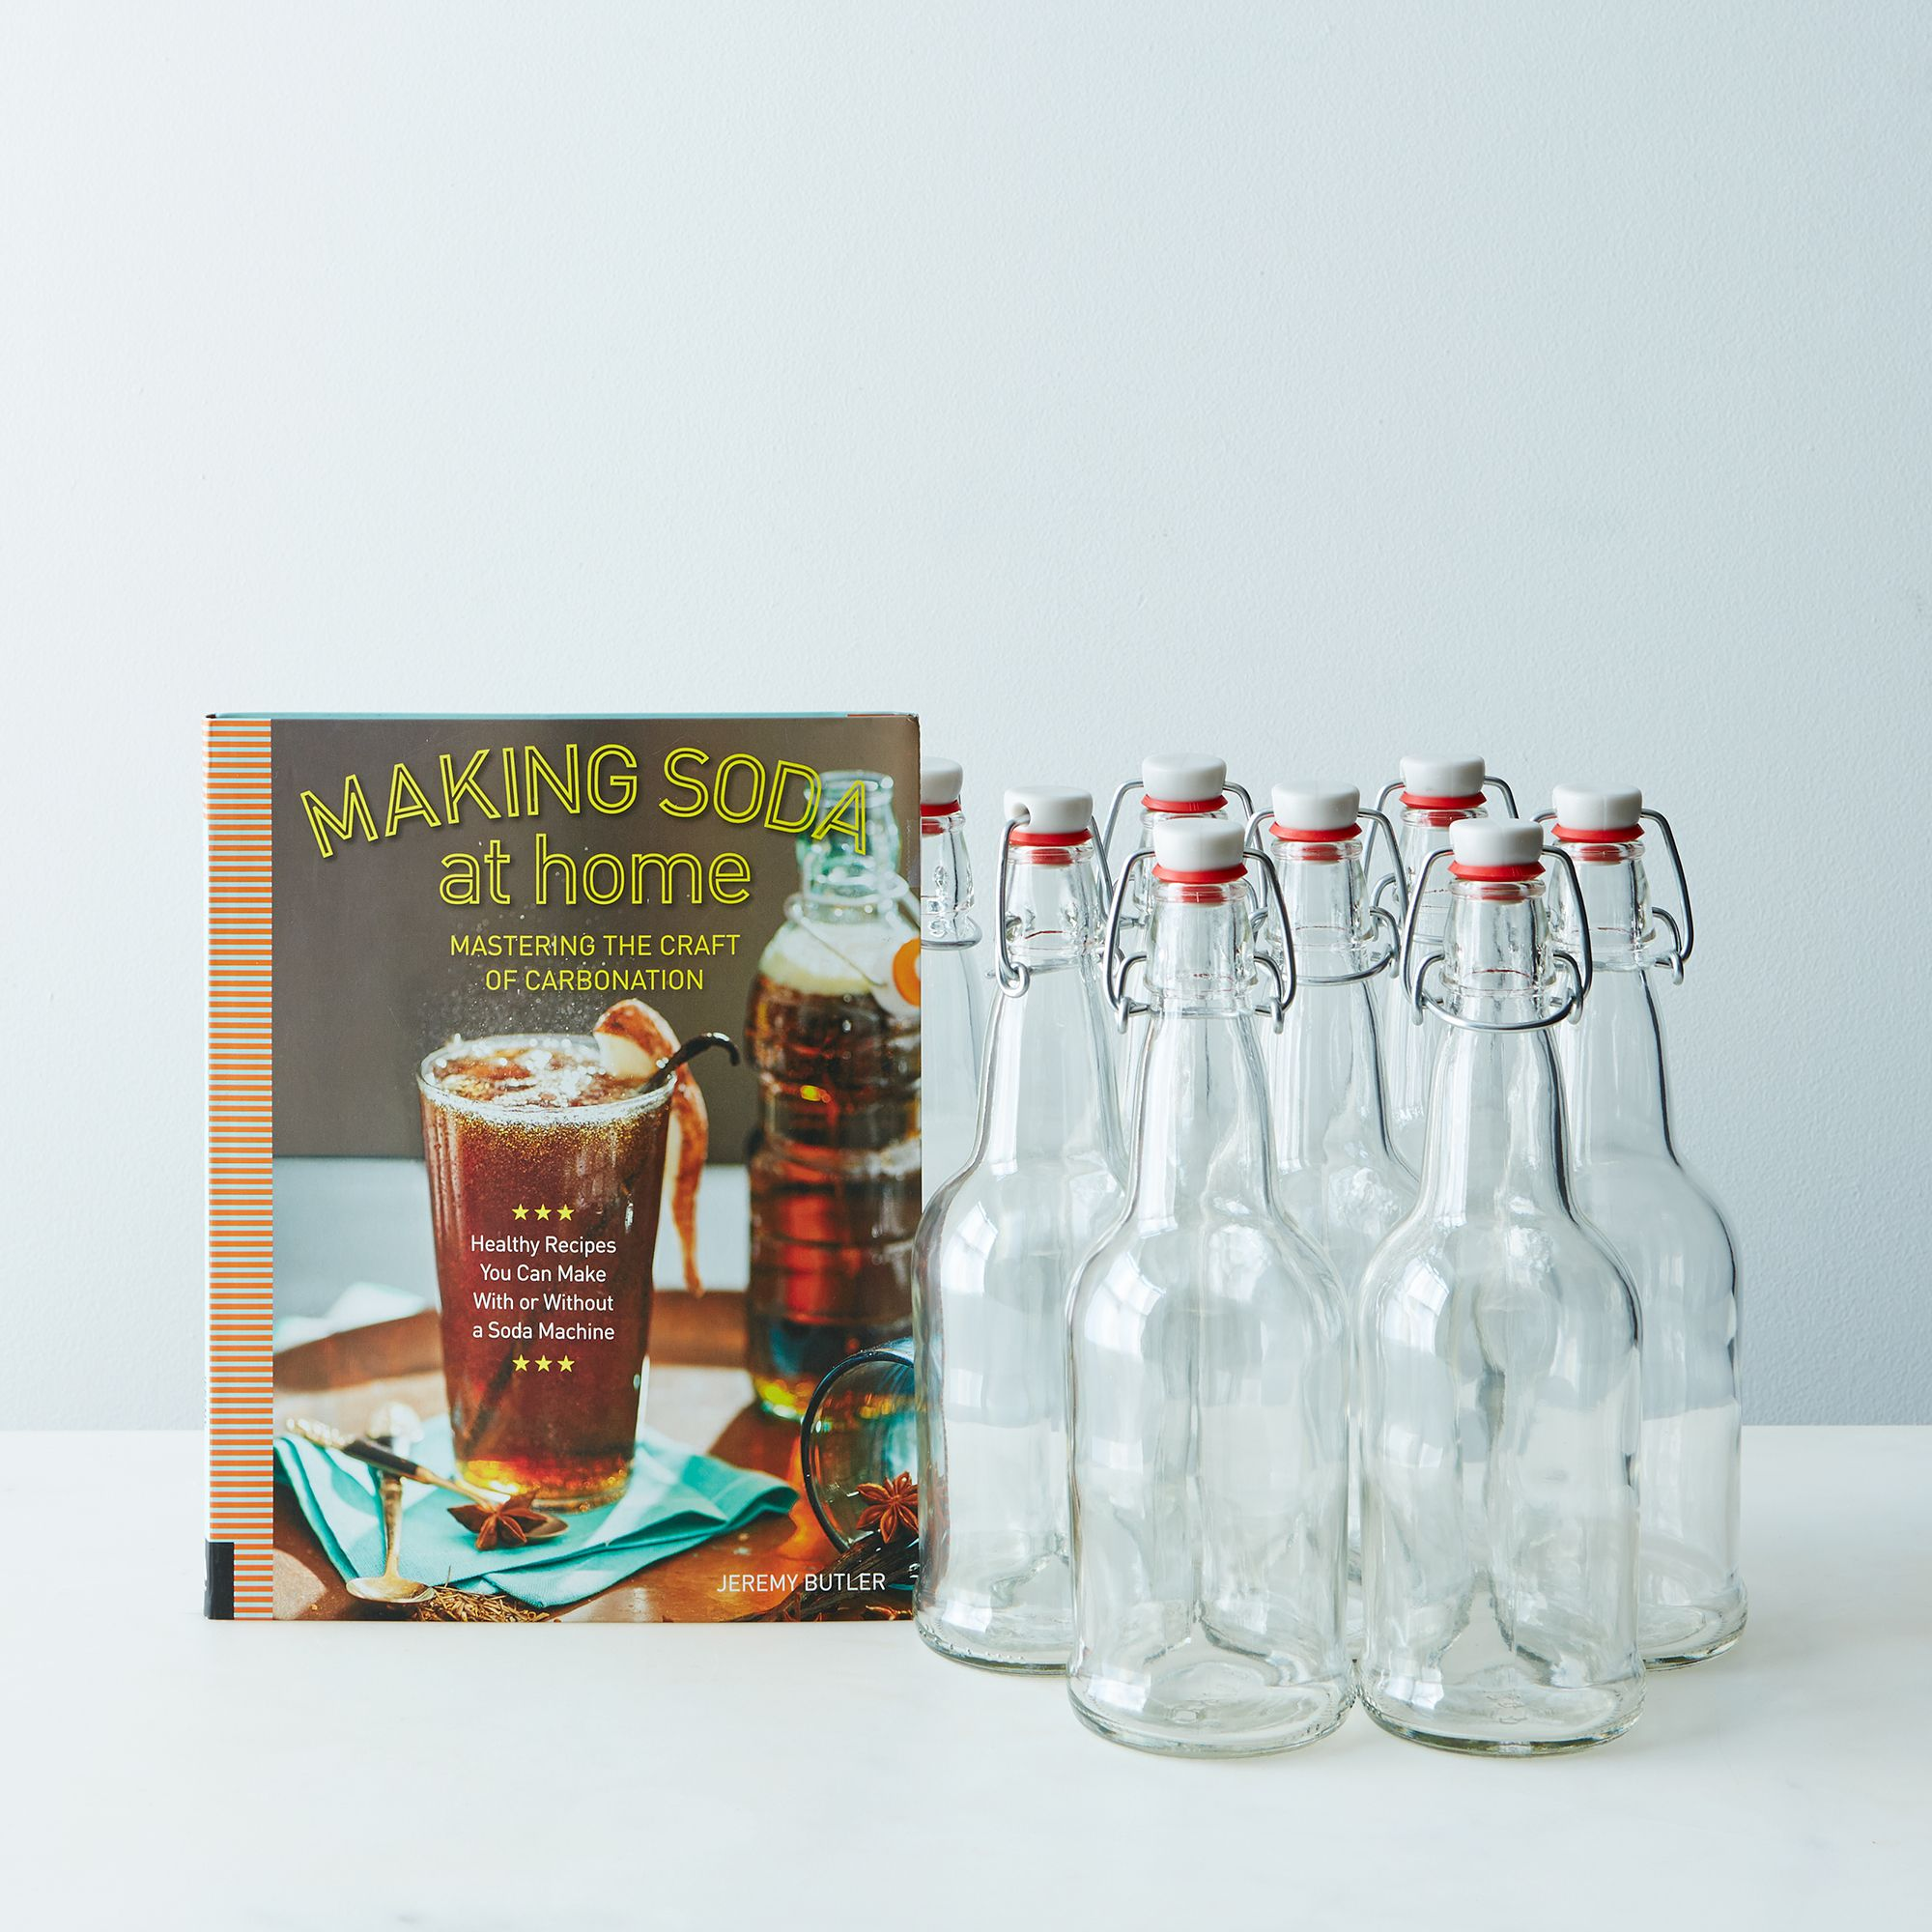 77858d74-f276-4171-a191-48286019eec3--mountain-feed-and-farm_making-soda-at-home-clear-swing-top-bottles-set-of-8_provisions_mark_weinberg_04-09-14_0454_silo